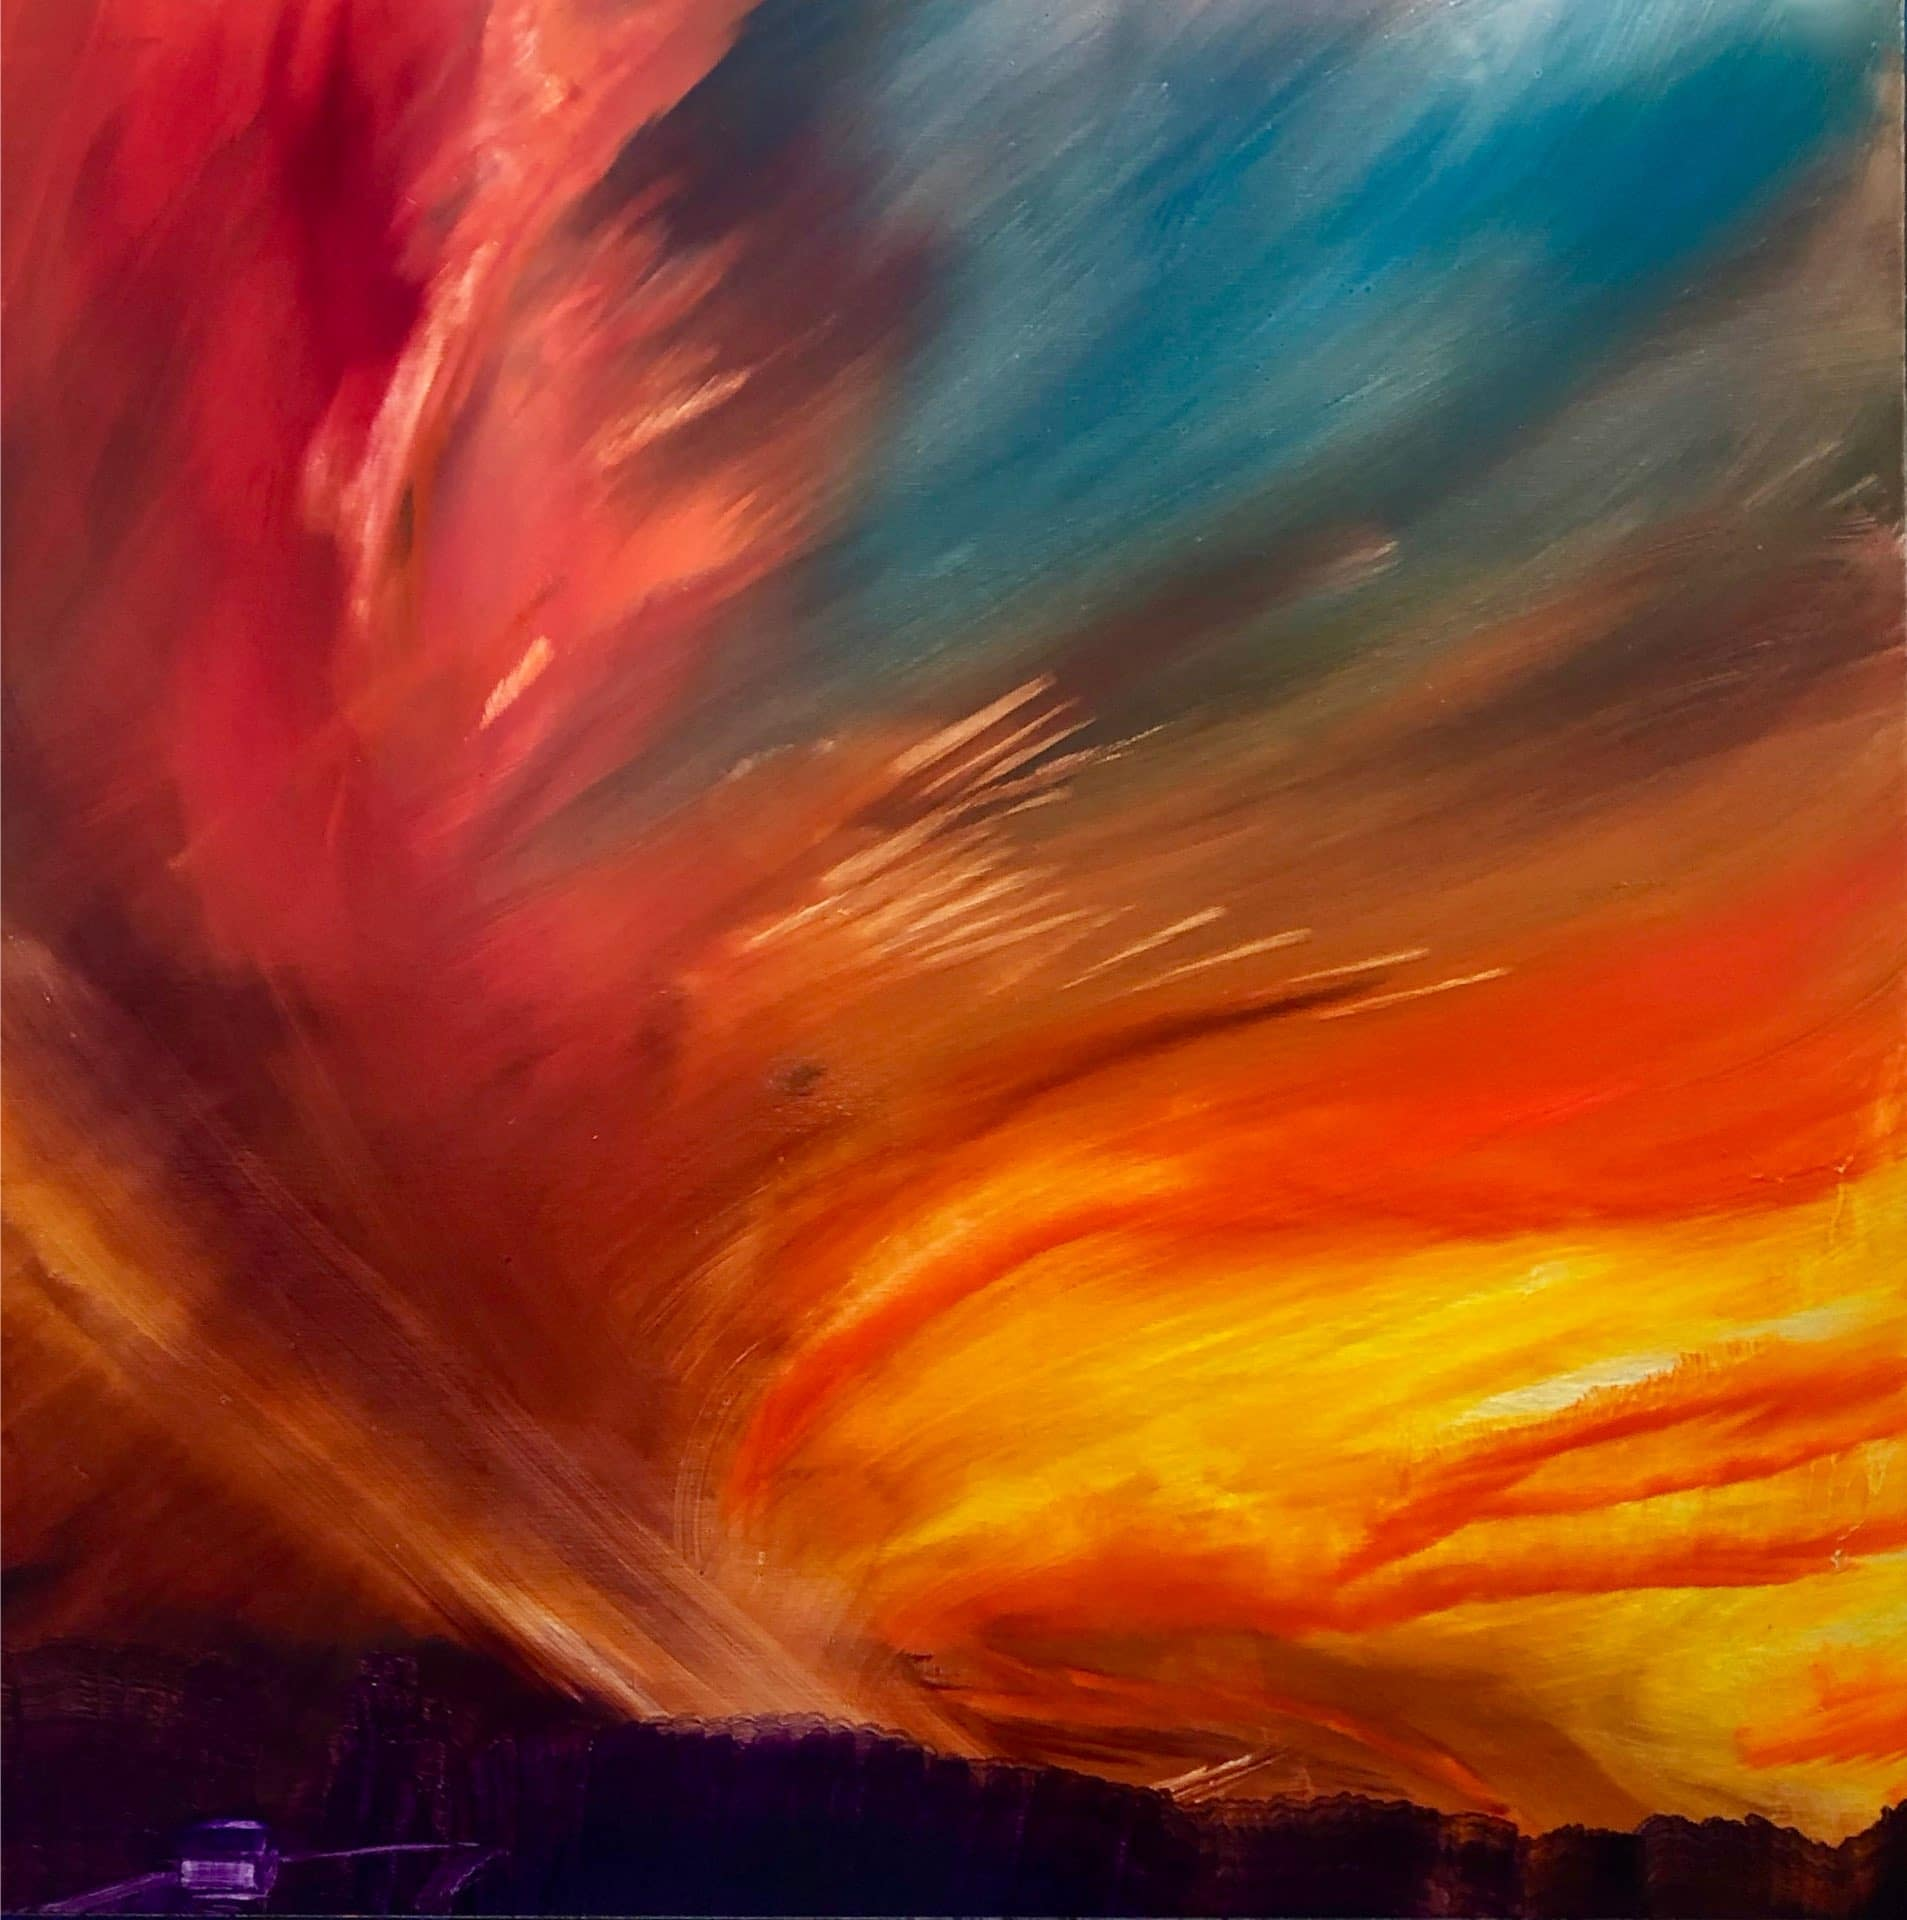 On the Way Home, Contemporary oil painting on metal of sunset with vibrant red and orange sky and deep purple shadow, Fine Art by Cynthia McLoughlin